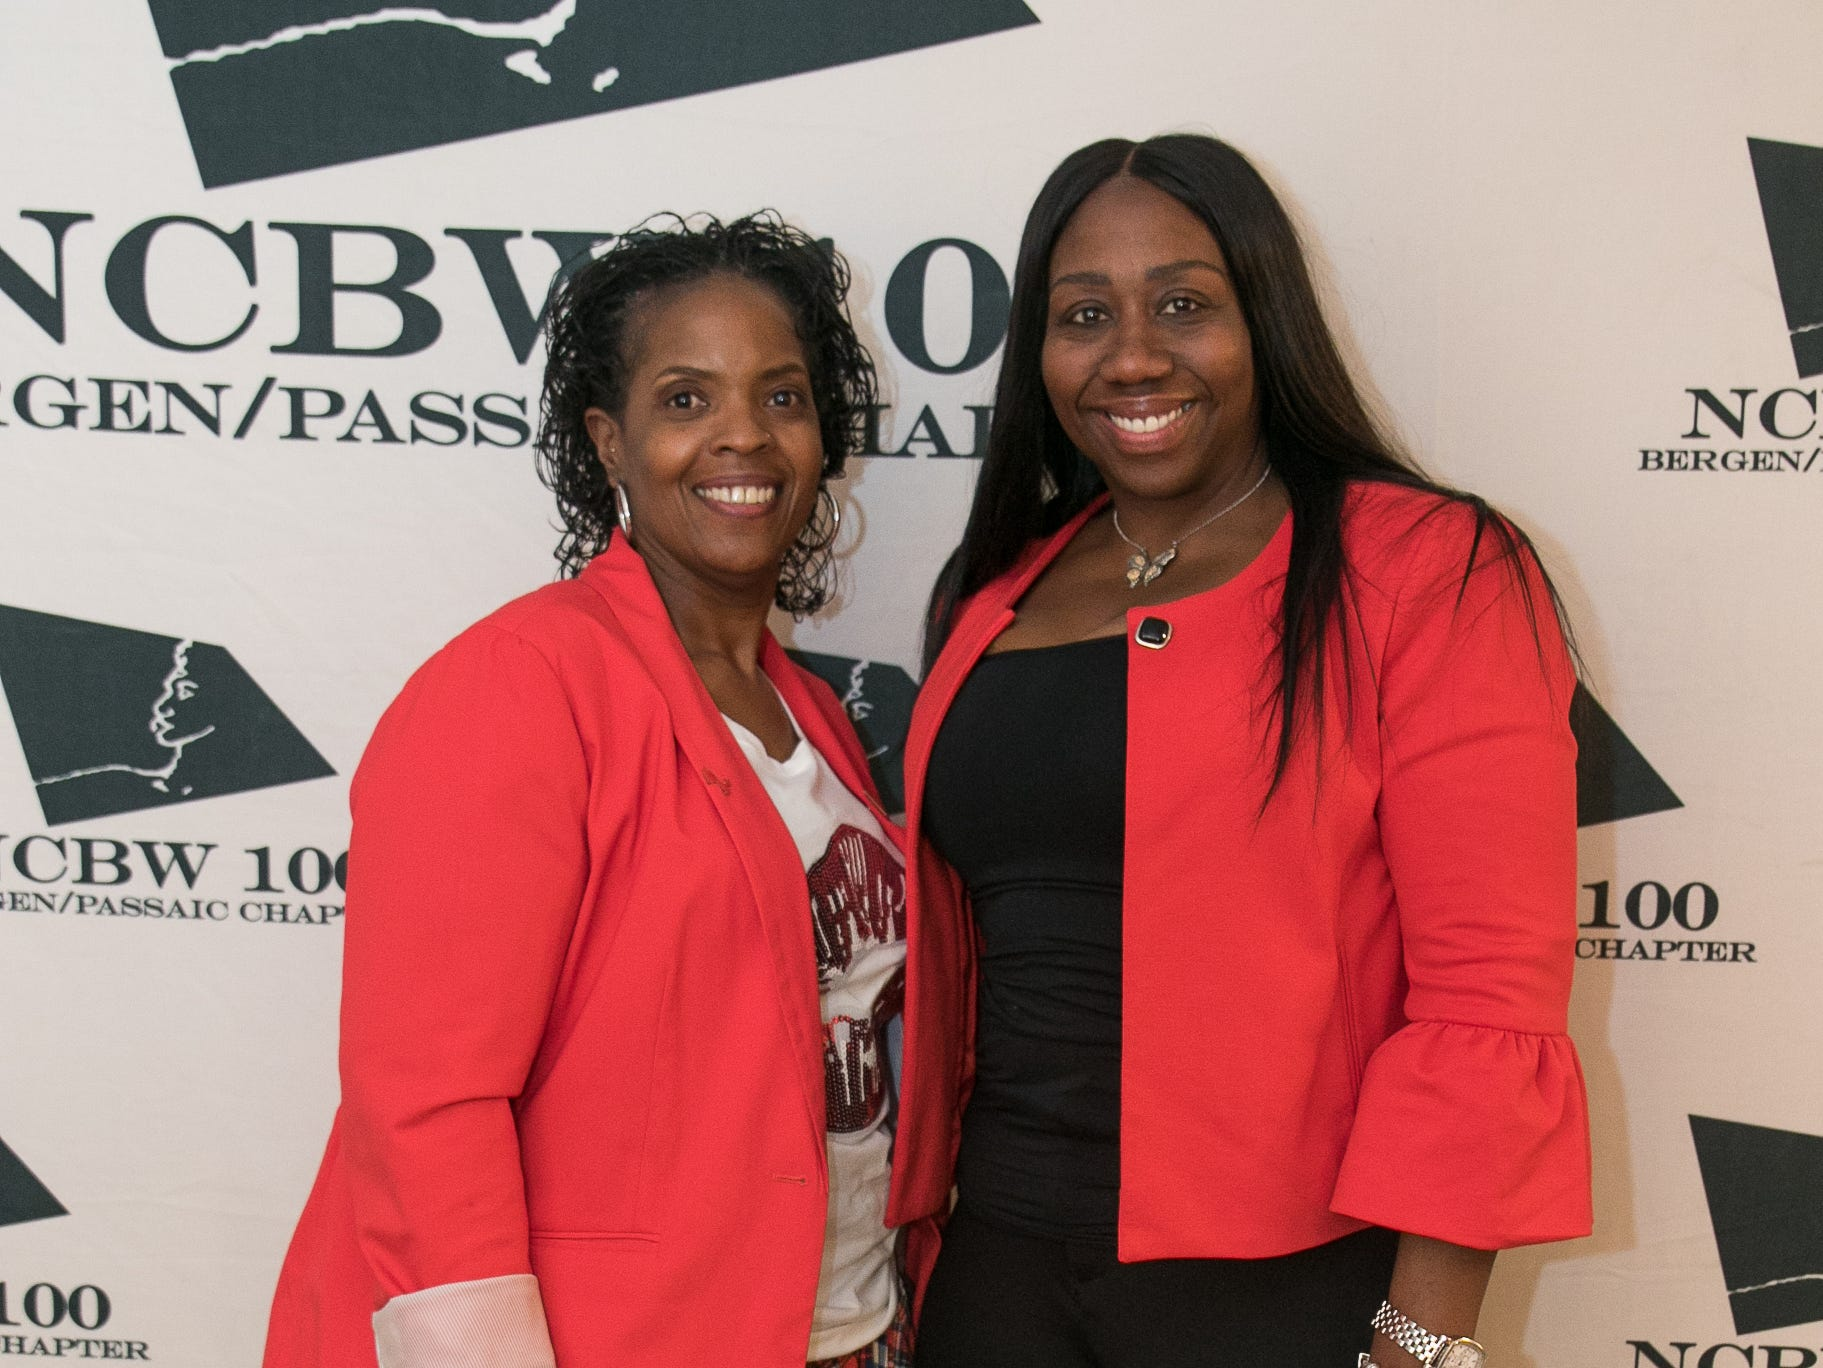 Karen Lawson, Carol Sutton. The National Coalition of Black Women of Bergen and Passaic Counties held its annual Heart Healthy Go Red Event at The Hackensack Performing Arts Theater. 02/01/2019